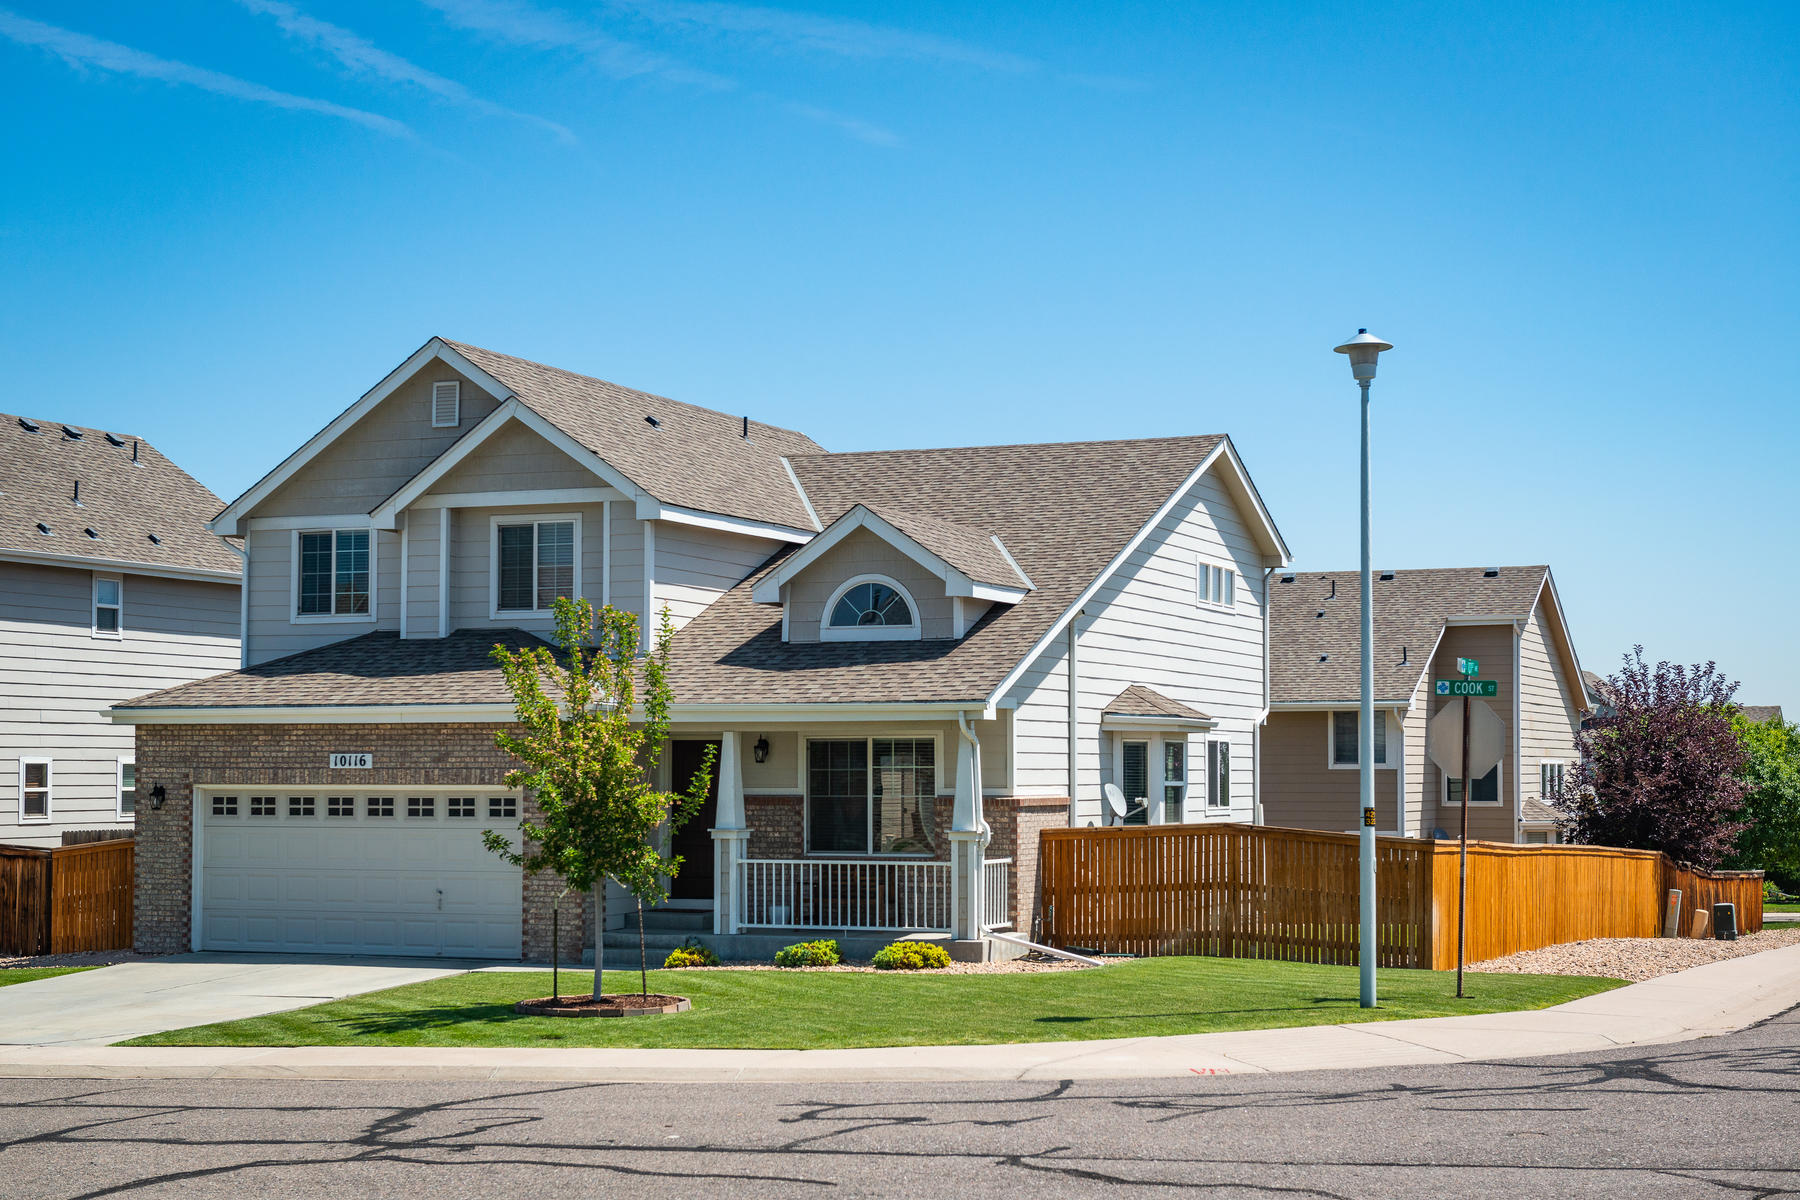 Single Family Home for Active at Move In Ready home that has been thoughtfully updated and maintained 10116 Cook St Thornton, Colorado 80229 United States